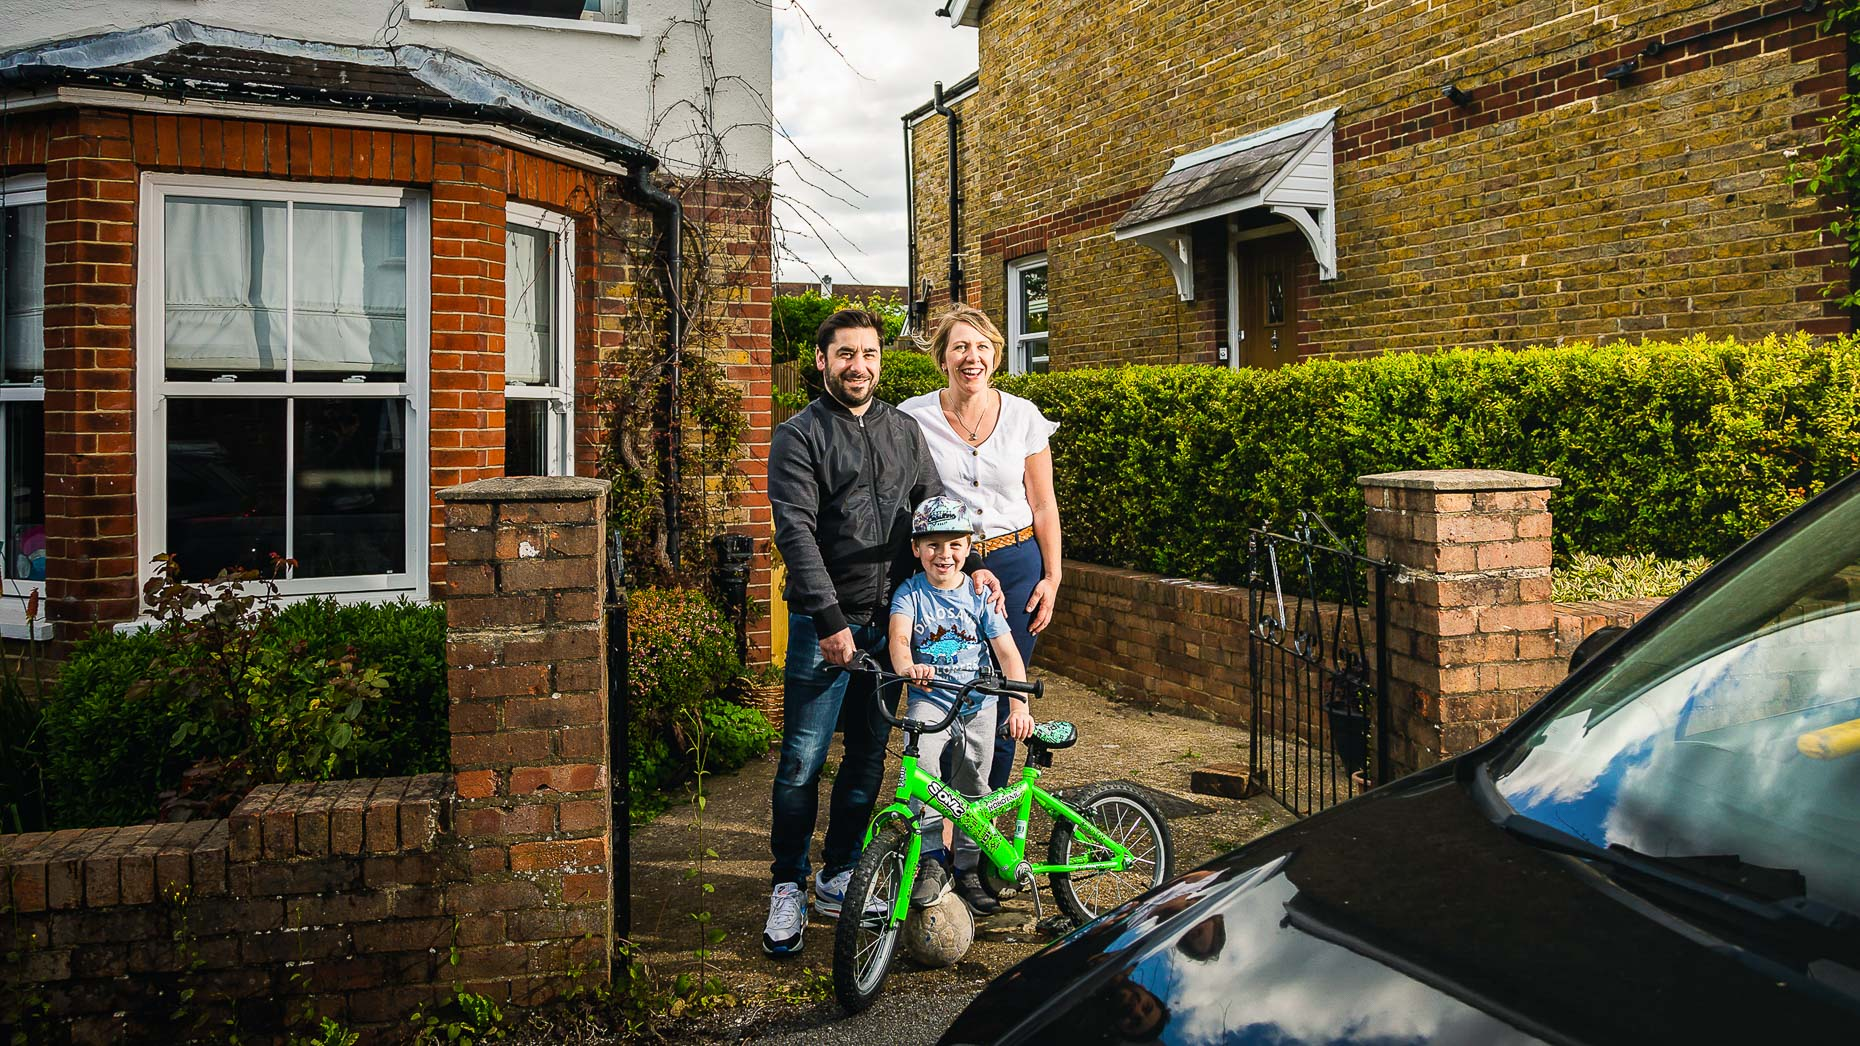 Ashtead Doorstep Portraits 18